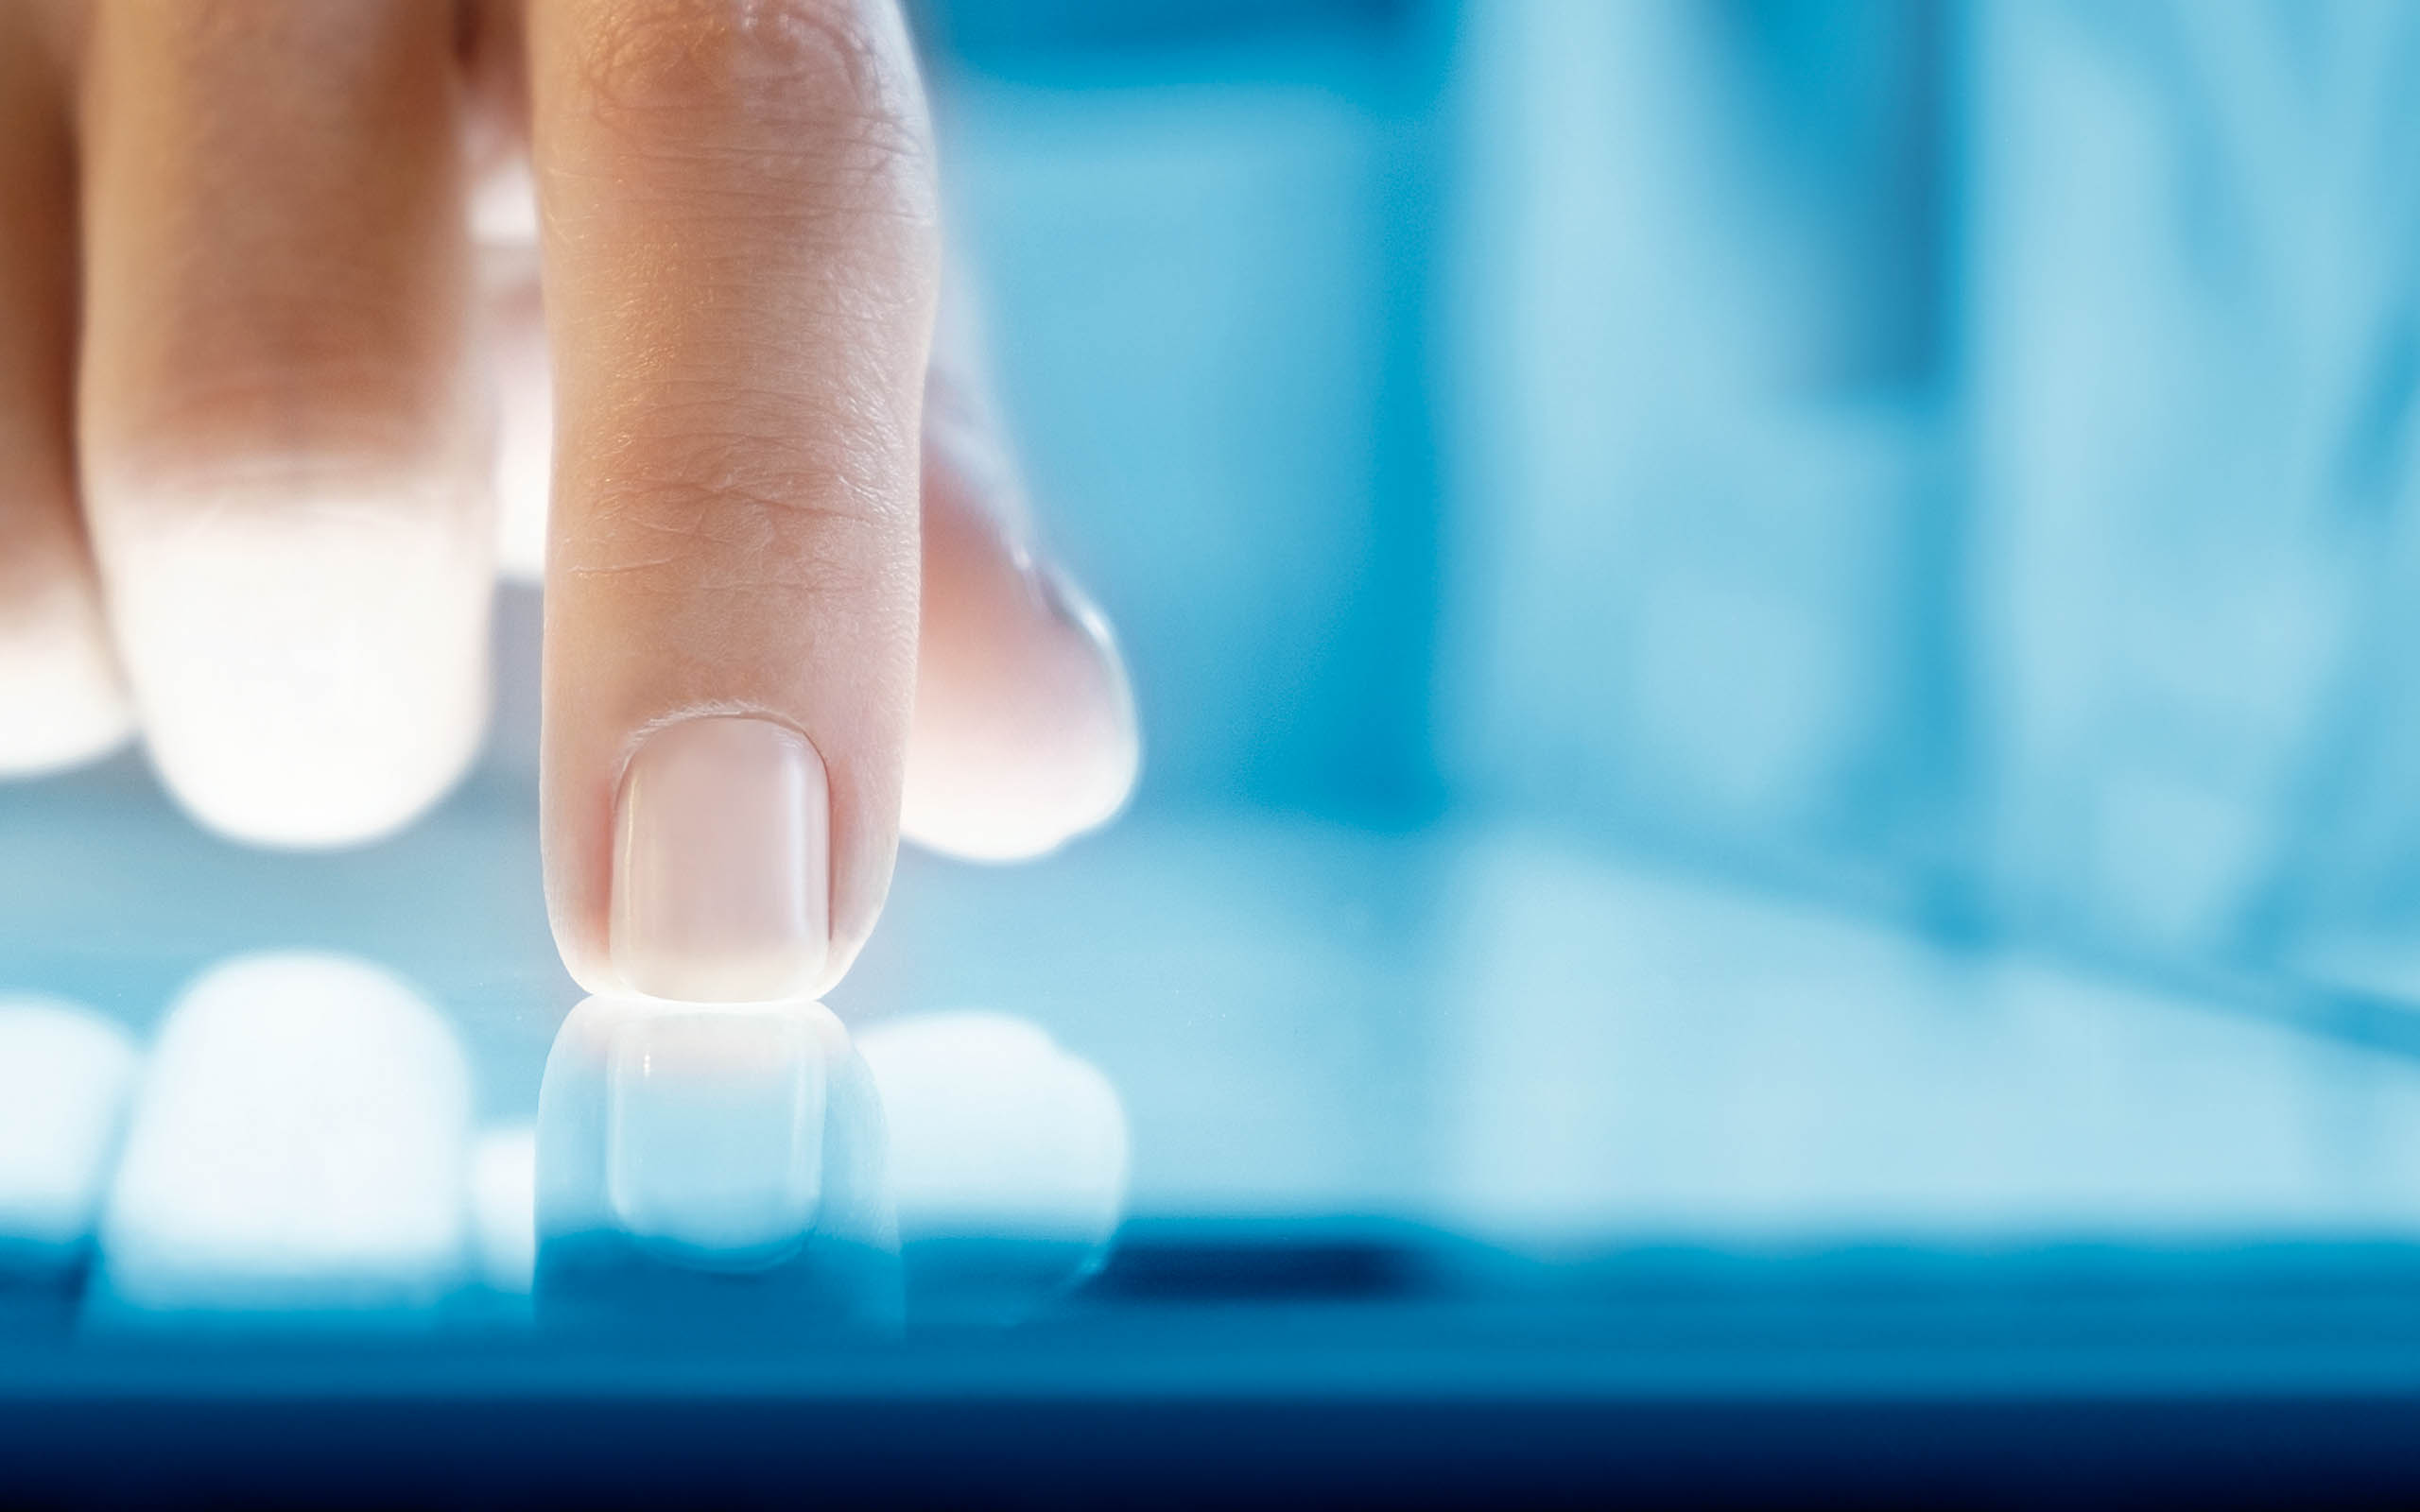 Finger on touch-screen blue tablet.